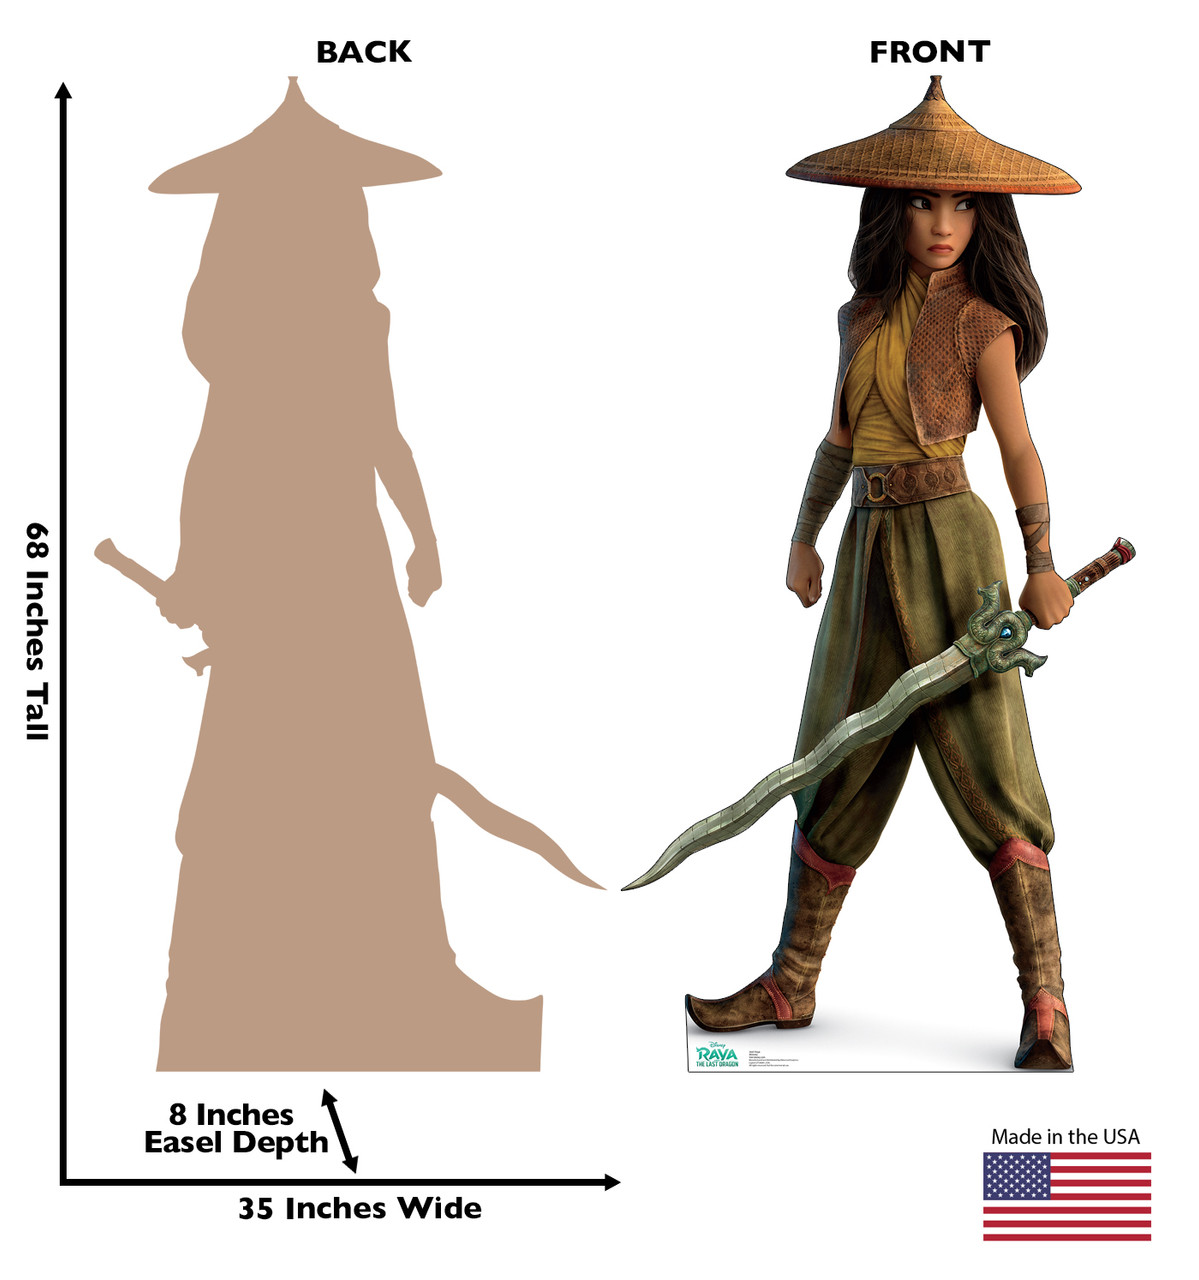 Lifes-size cardboard standee of Raya from Disney's Raya and the Last Dragon with back and front dimensions.